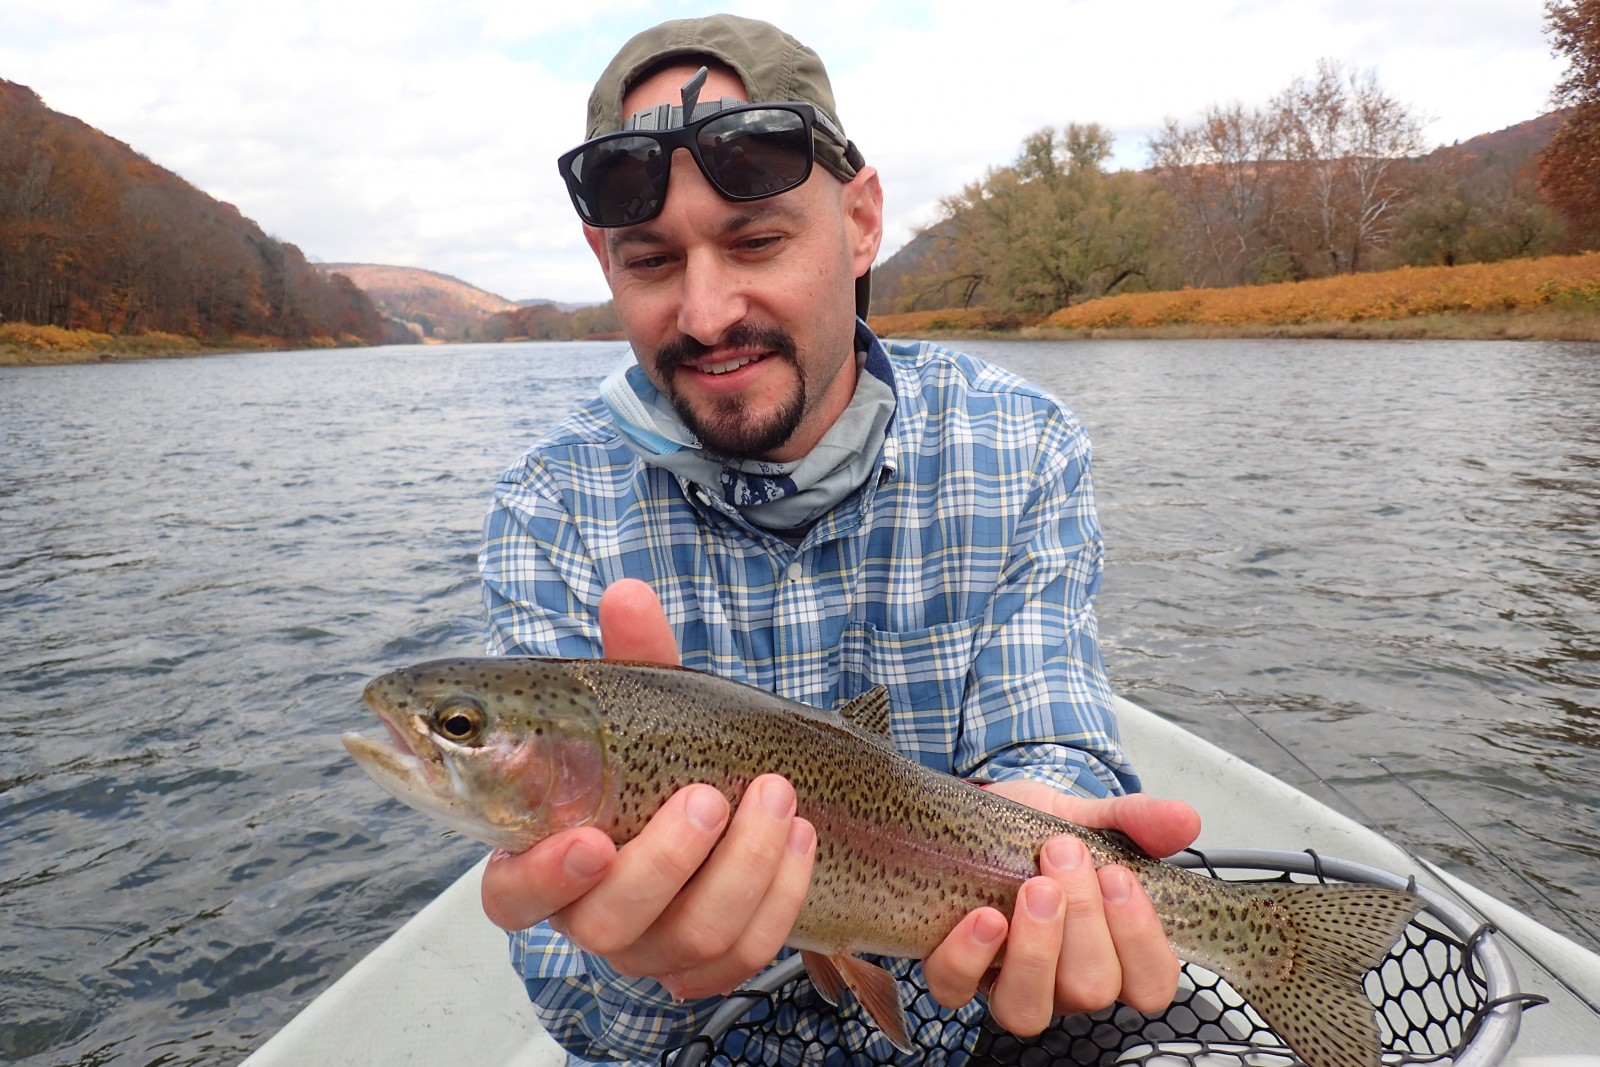 guided fly fishing float trips new york and pennsylvania upper delaware river and west branch delaware river trout jesse filingo